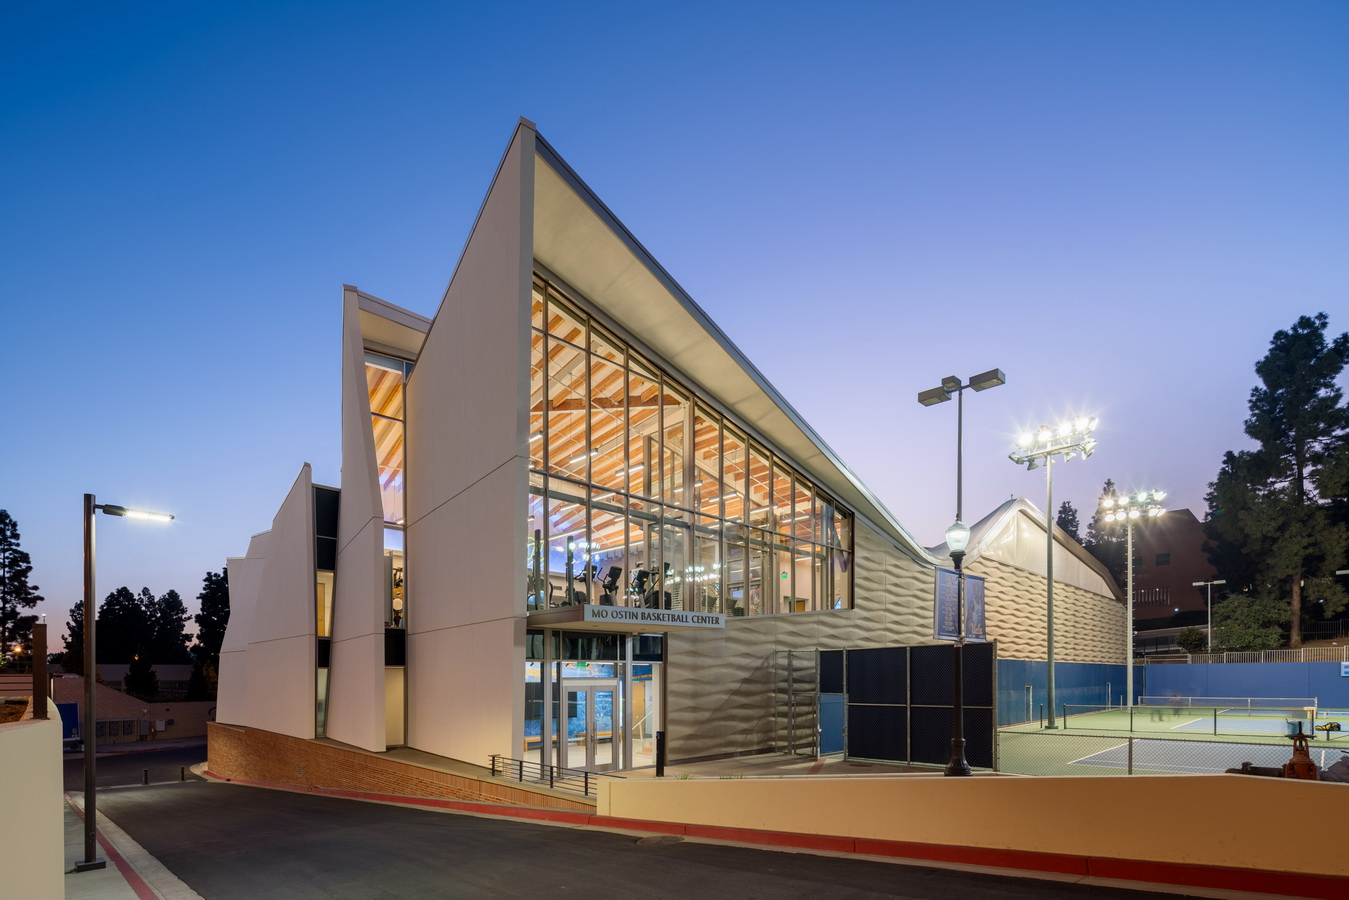 调整大小 ucla-basketball-facility-kevin-daly-architects-architecture-los-angeles-california-usa_dezeen_2364_col_17.jpg